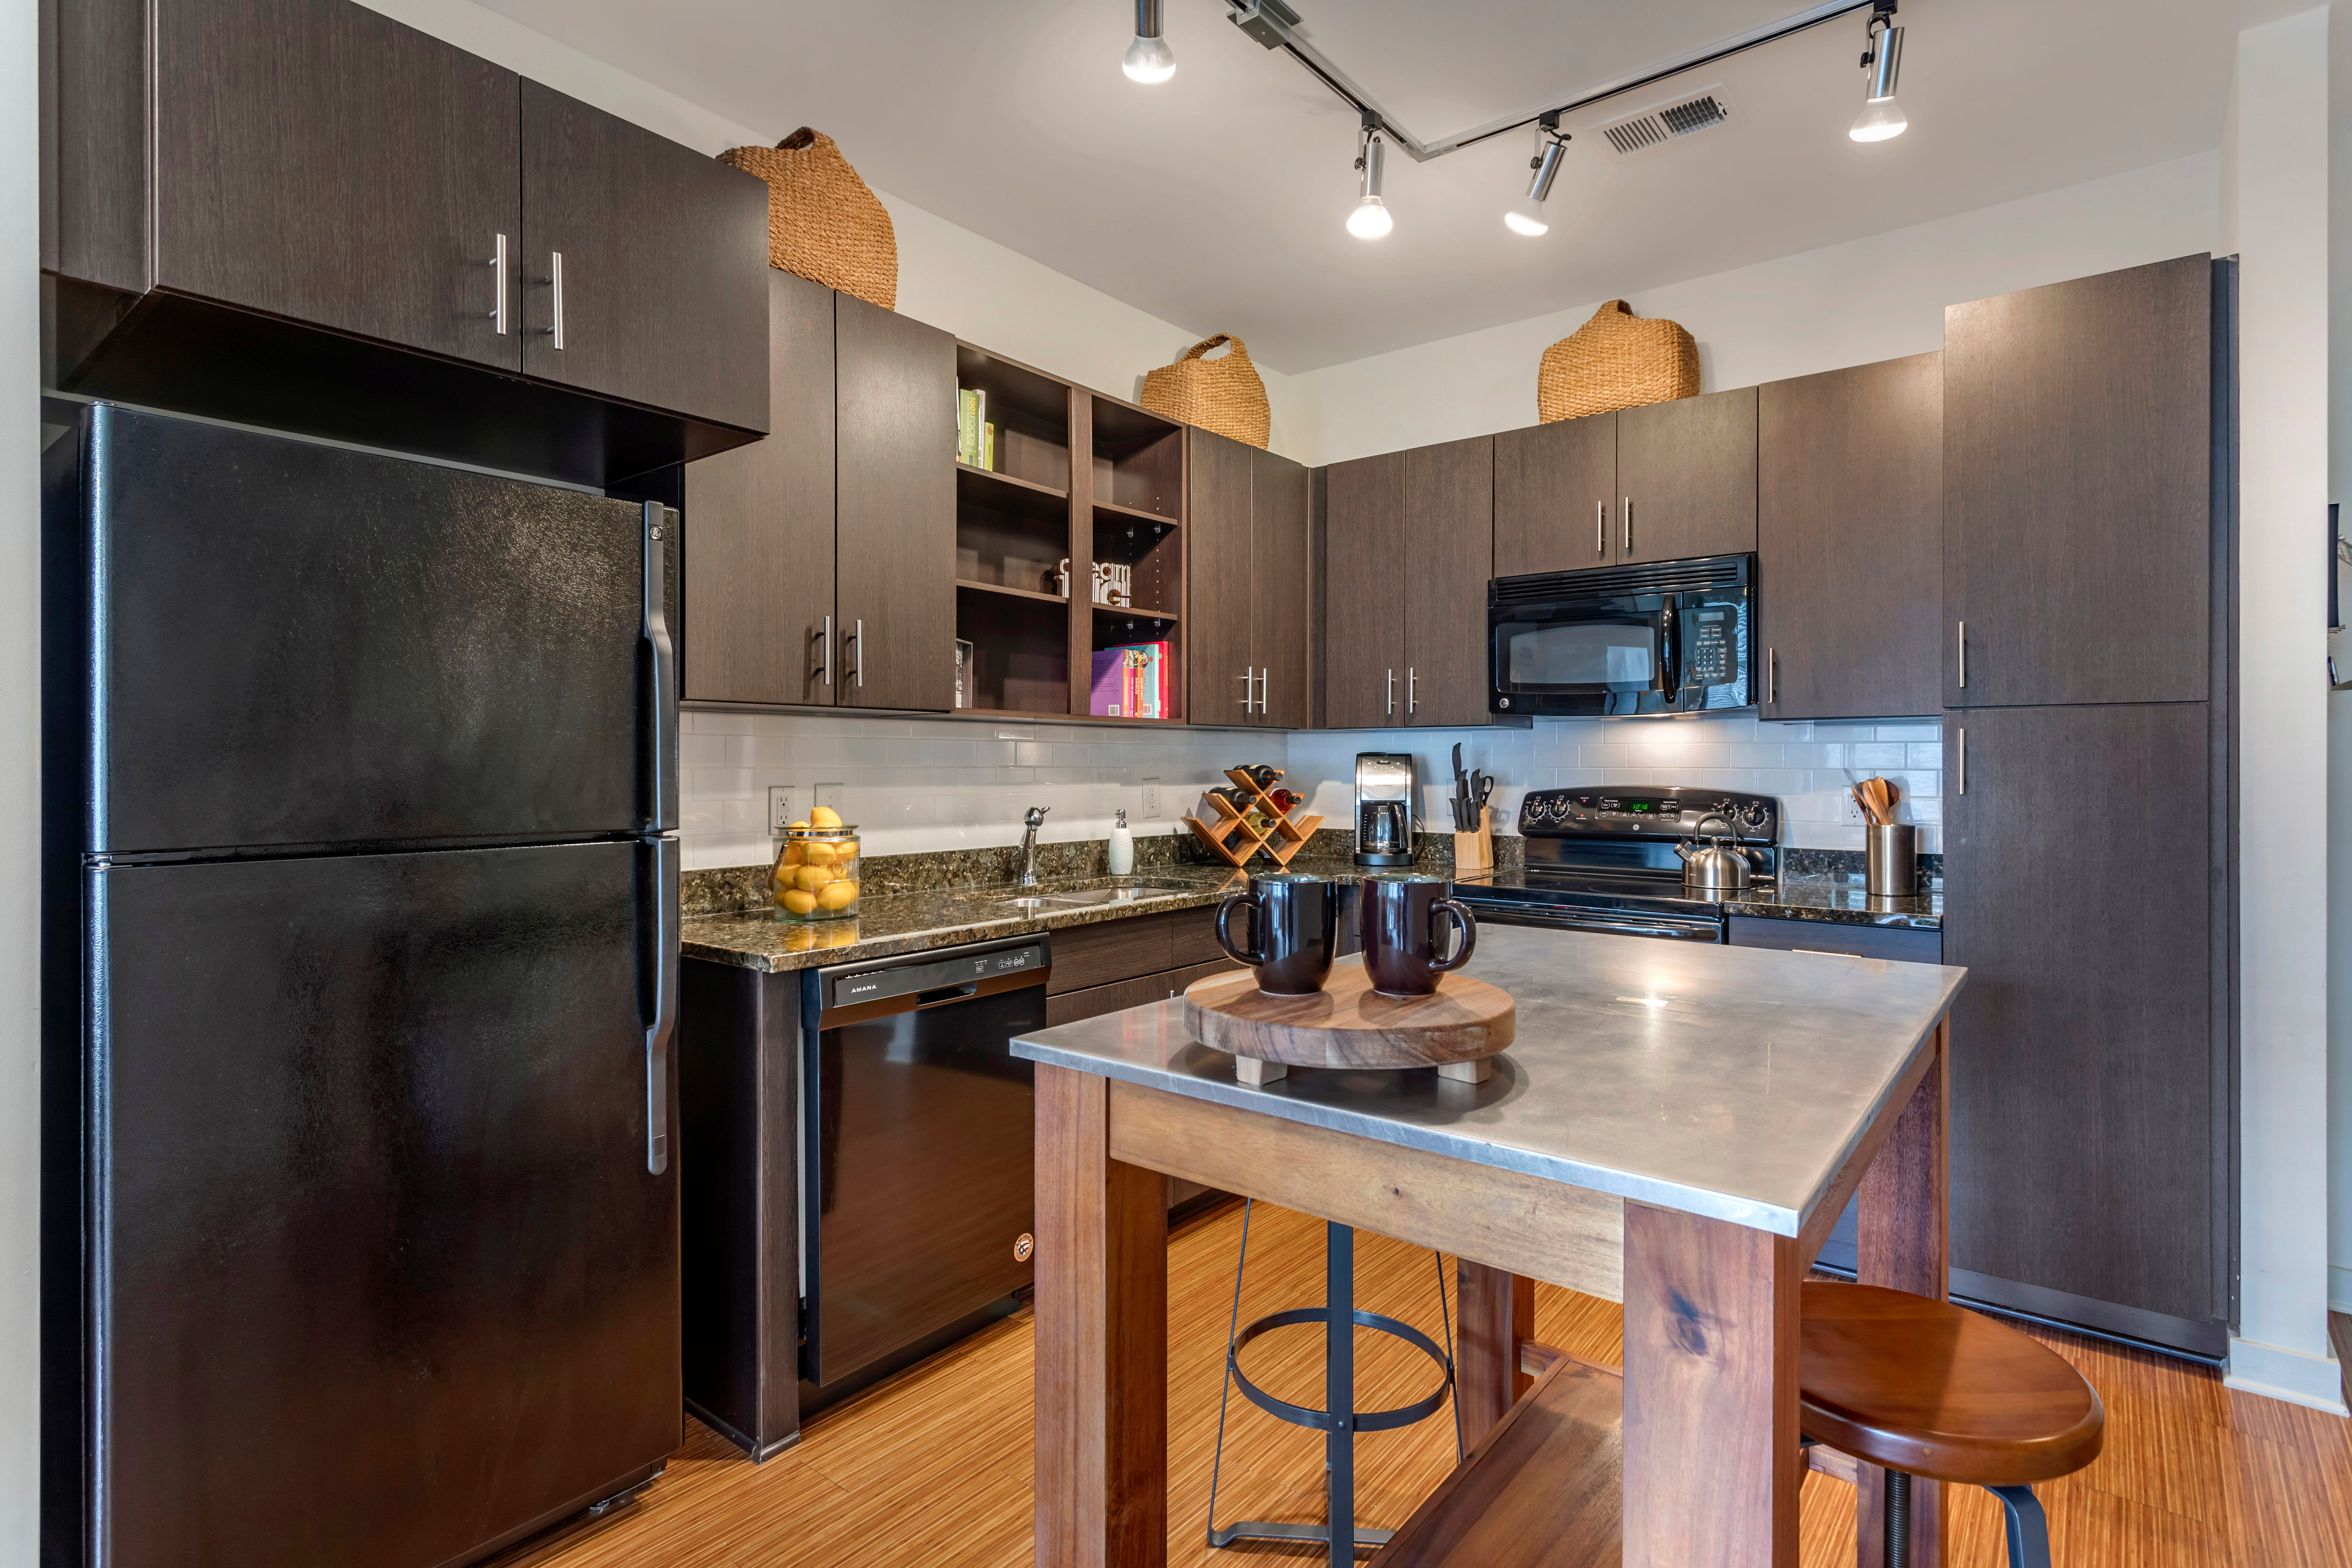 Model home's gourmet kitchen with an island and granite countertops at Olympus Midtown in Nashville, Tennessee